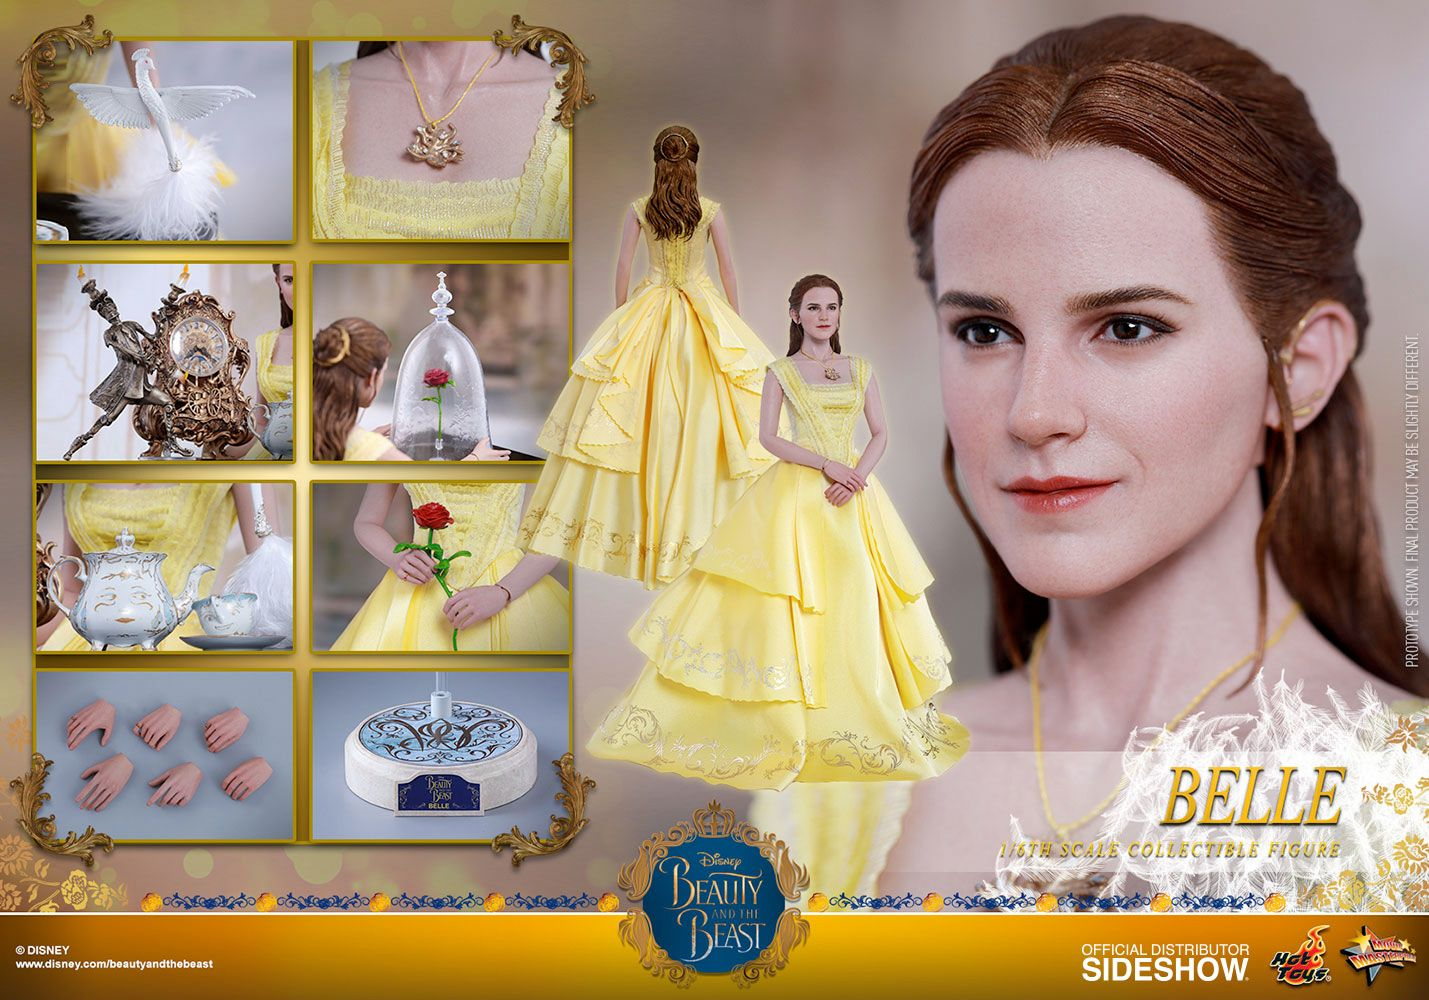 Belle-Beauty-and-the-Beast-Collectible-Figure-11